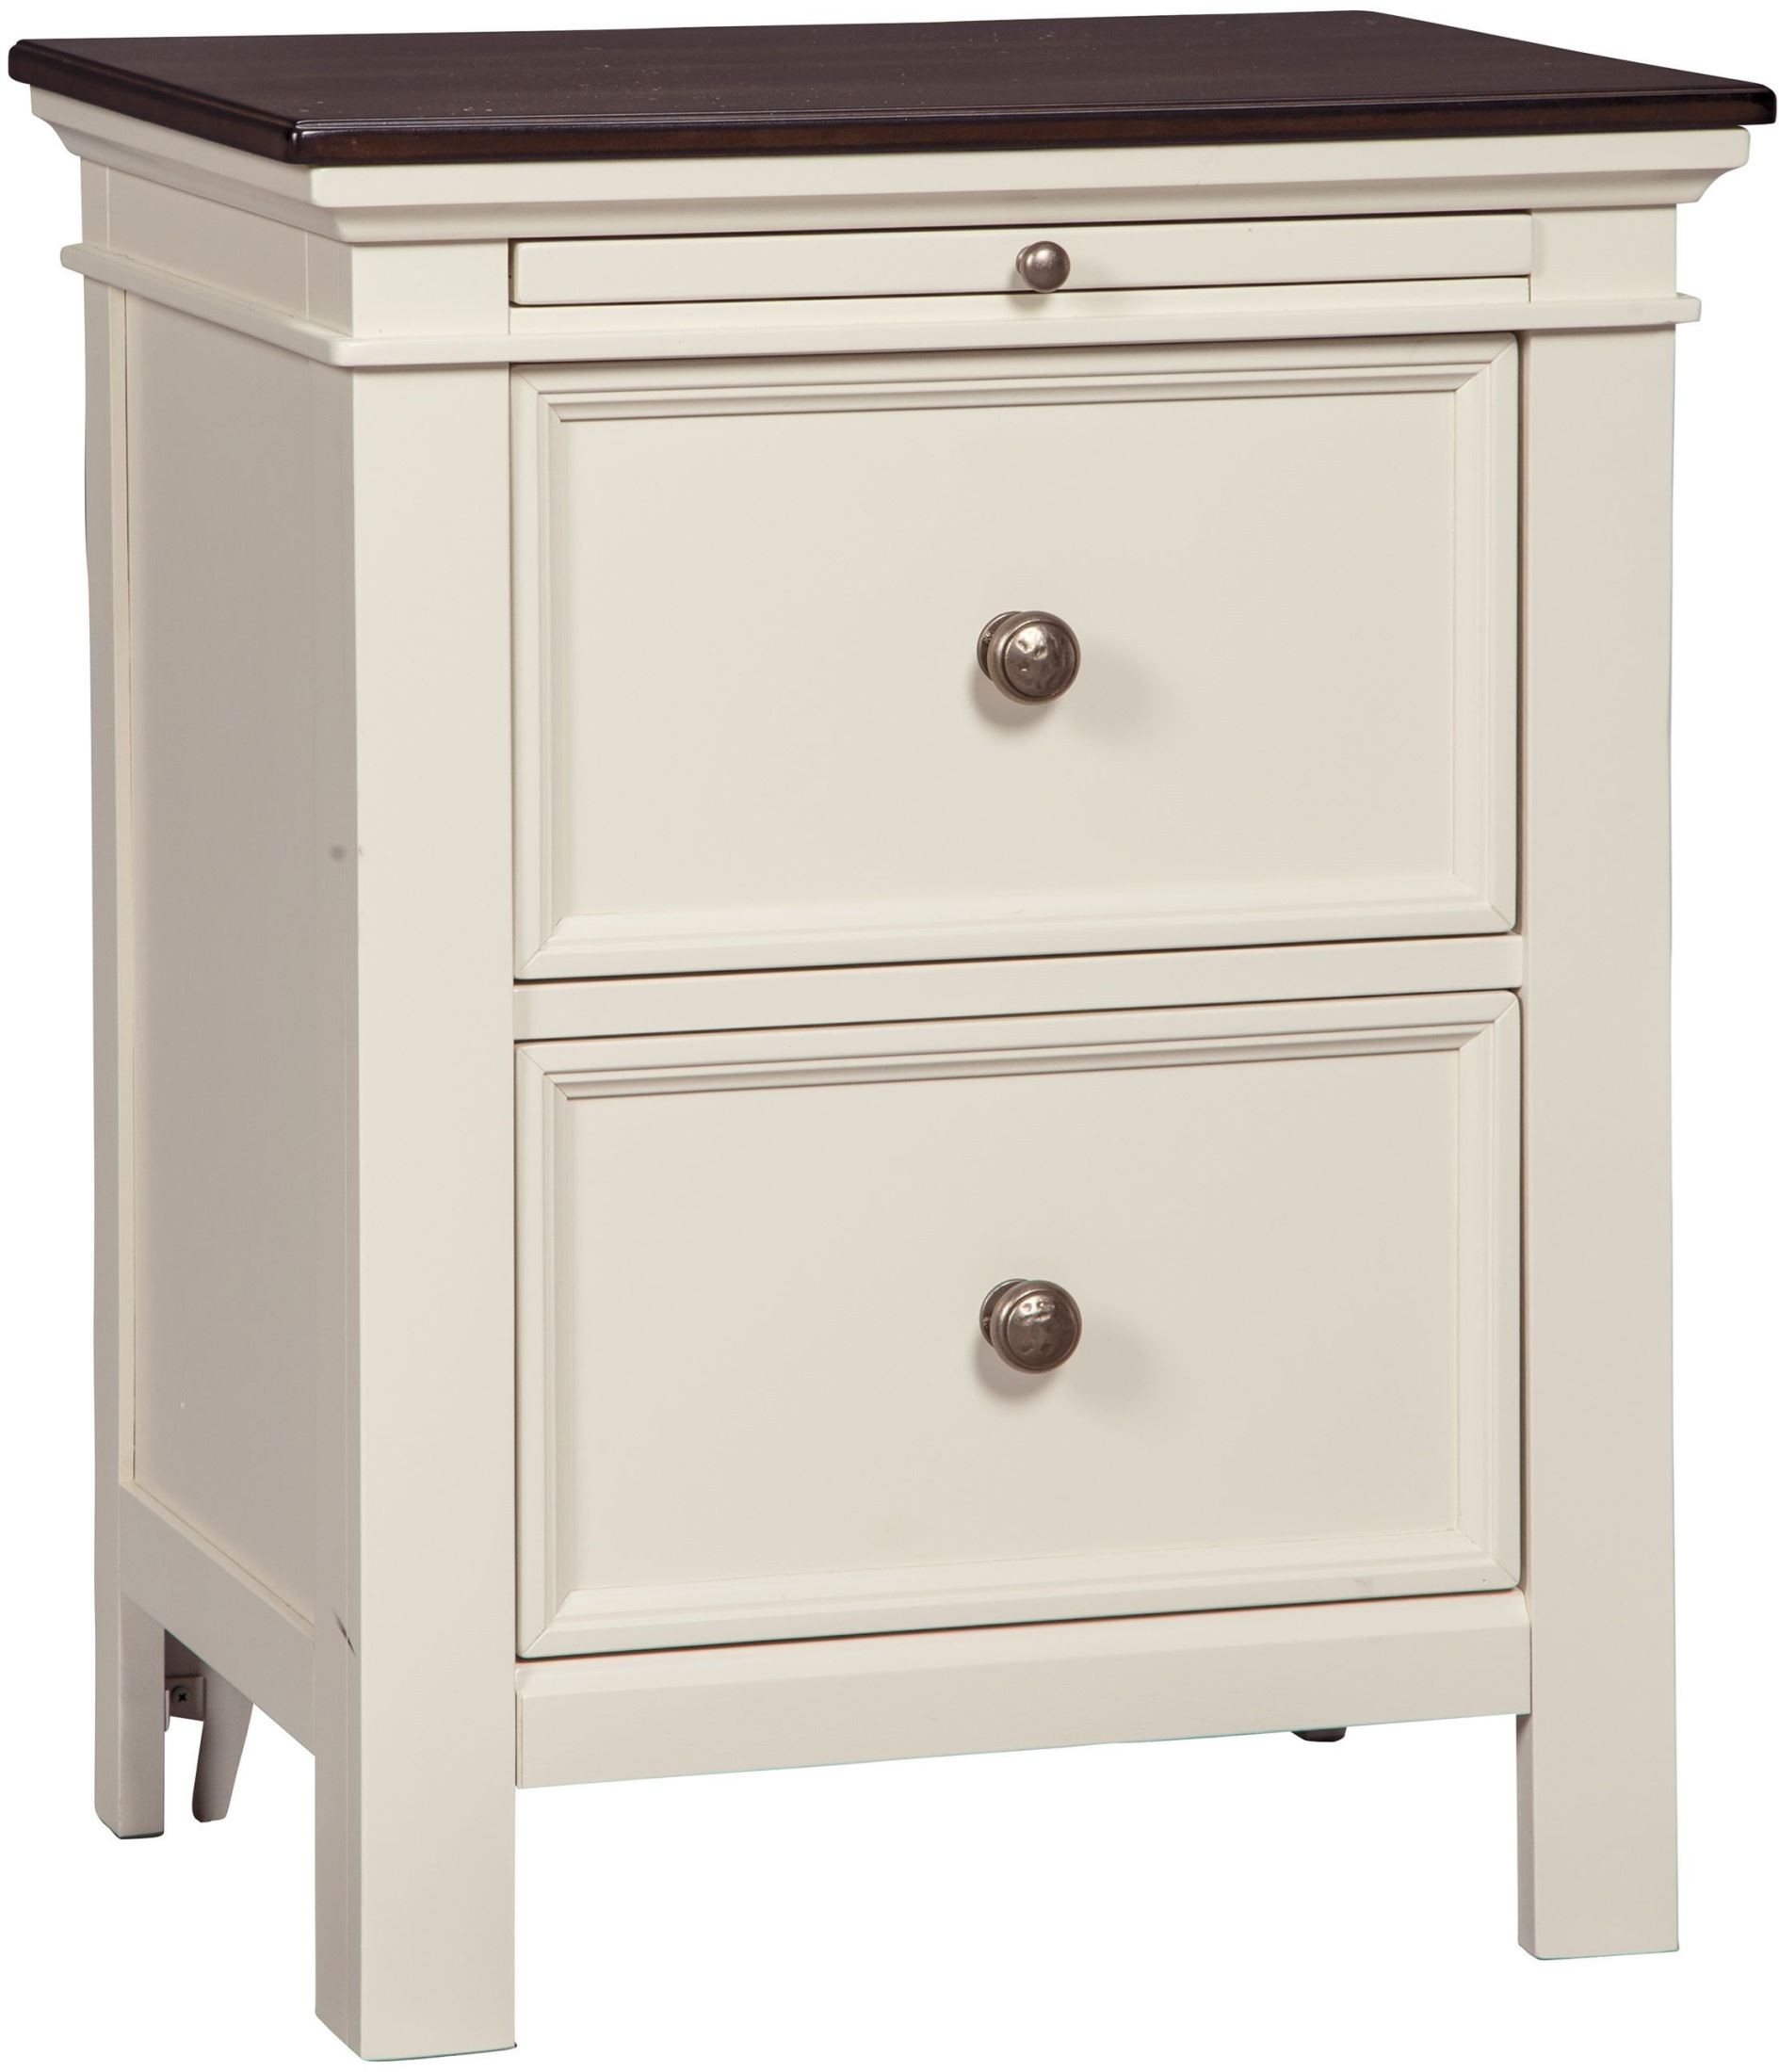 Woodanville White and Brown 2 Drawer Nightstand, B623